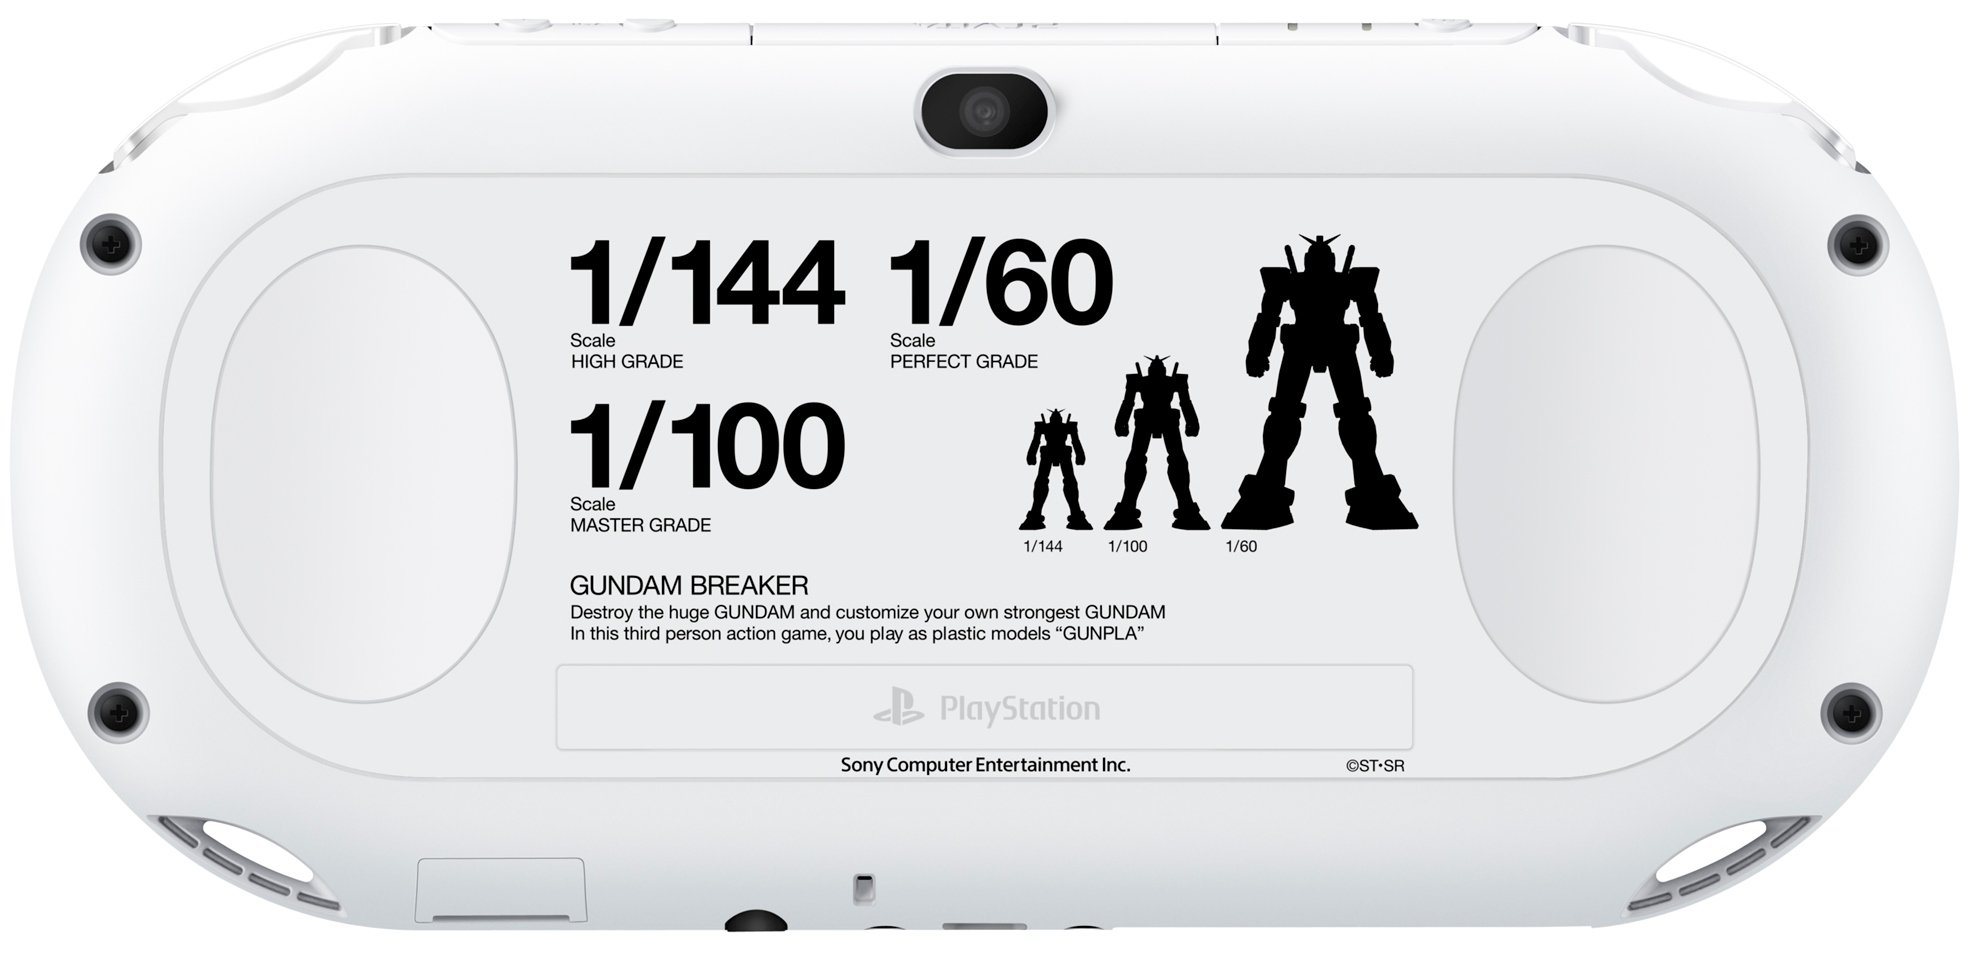 PlayStation Vita Gundam Breaker set(PCHL-60001)(Japan Import)